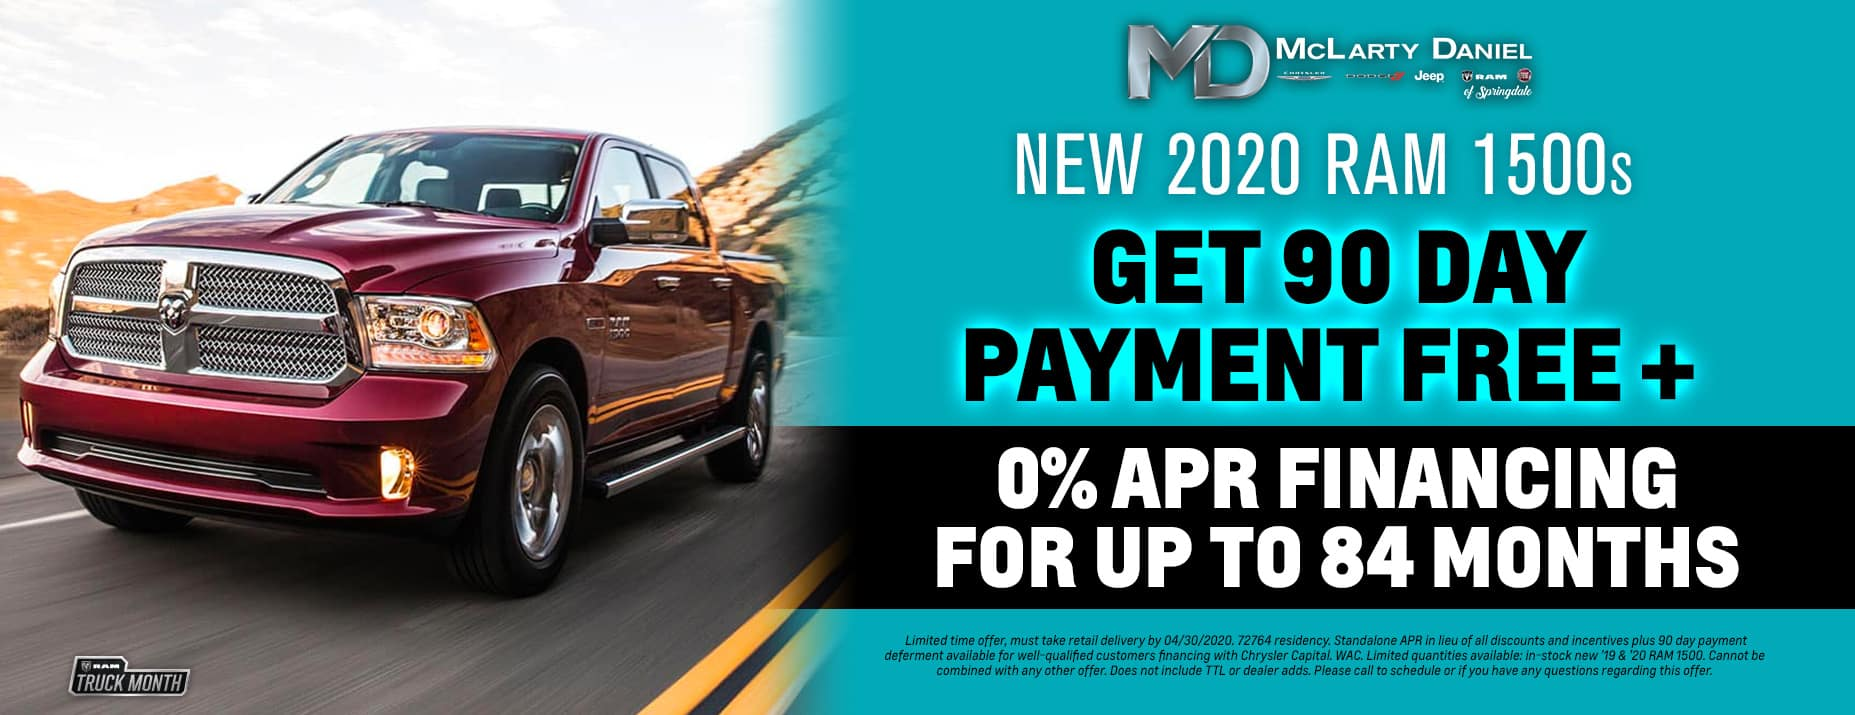 0/84 + 90 Days Payment Free on new RAM 1500!